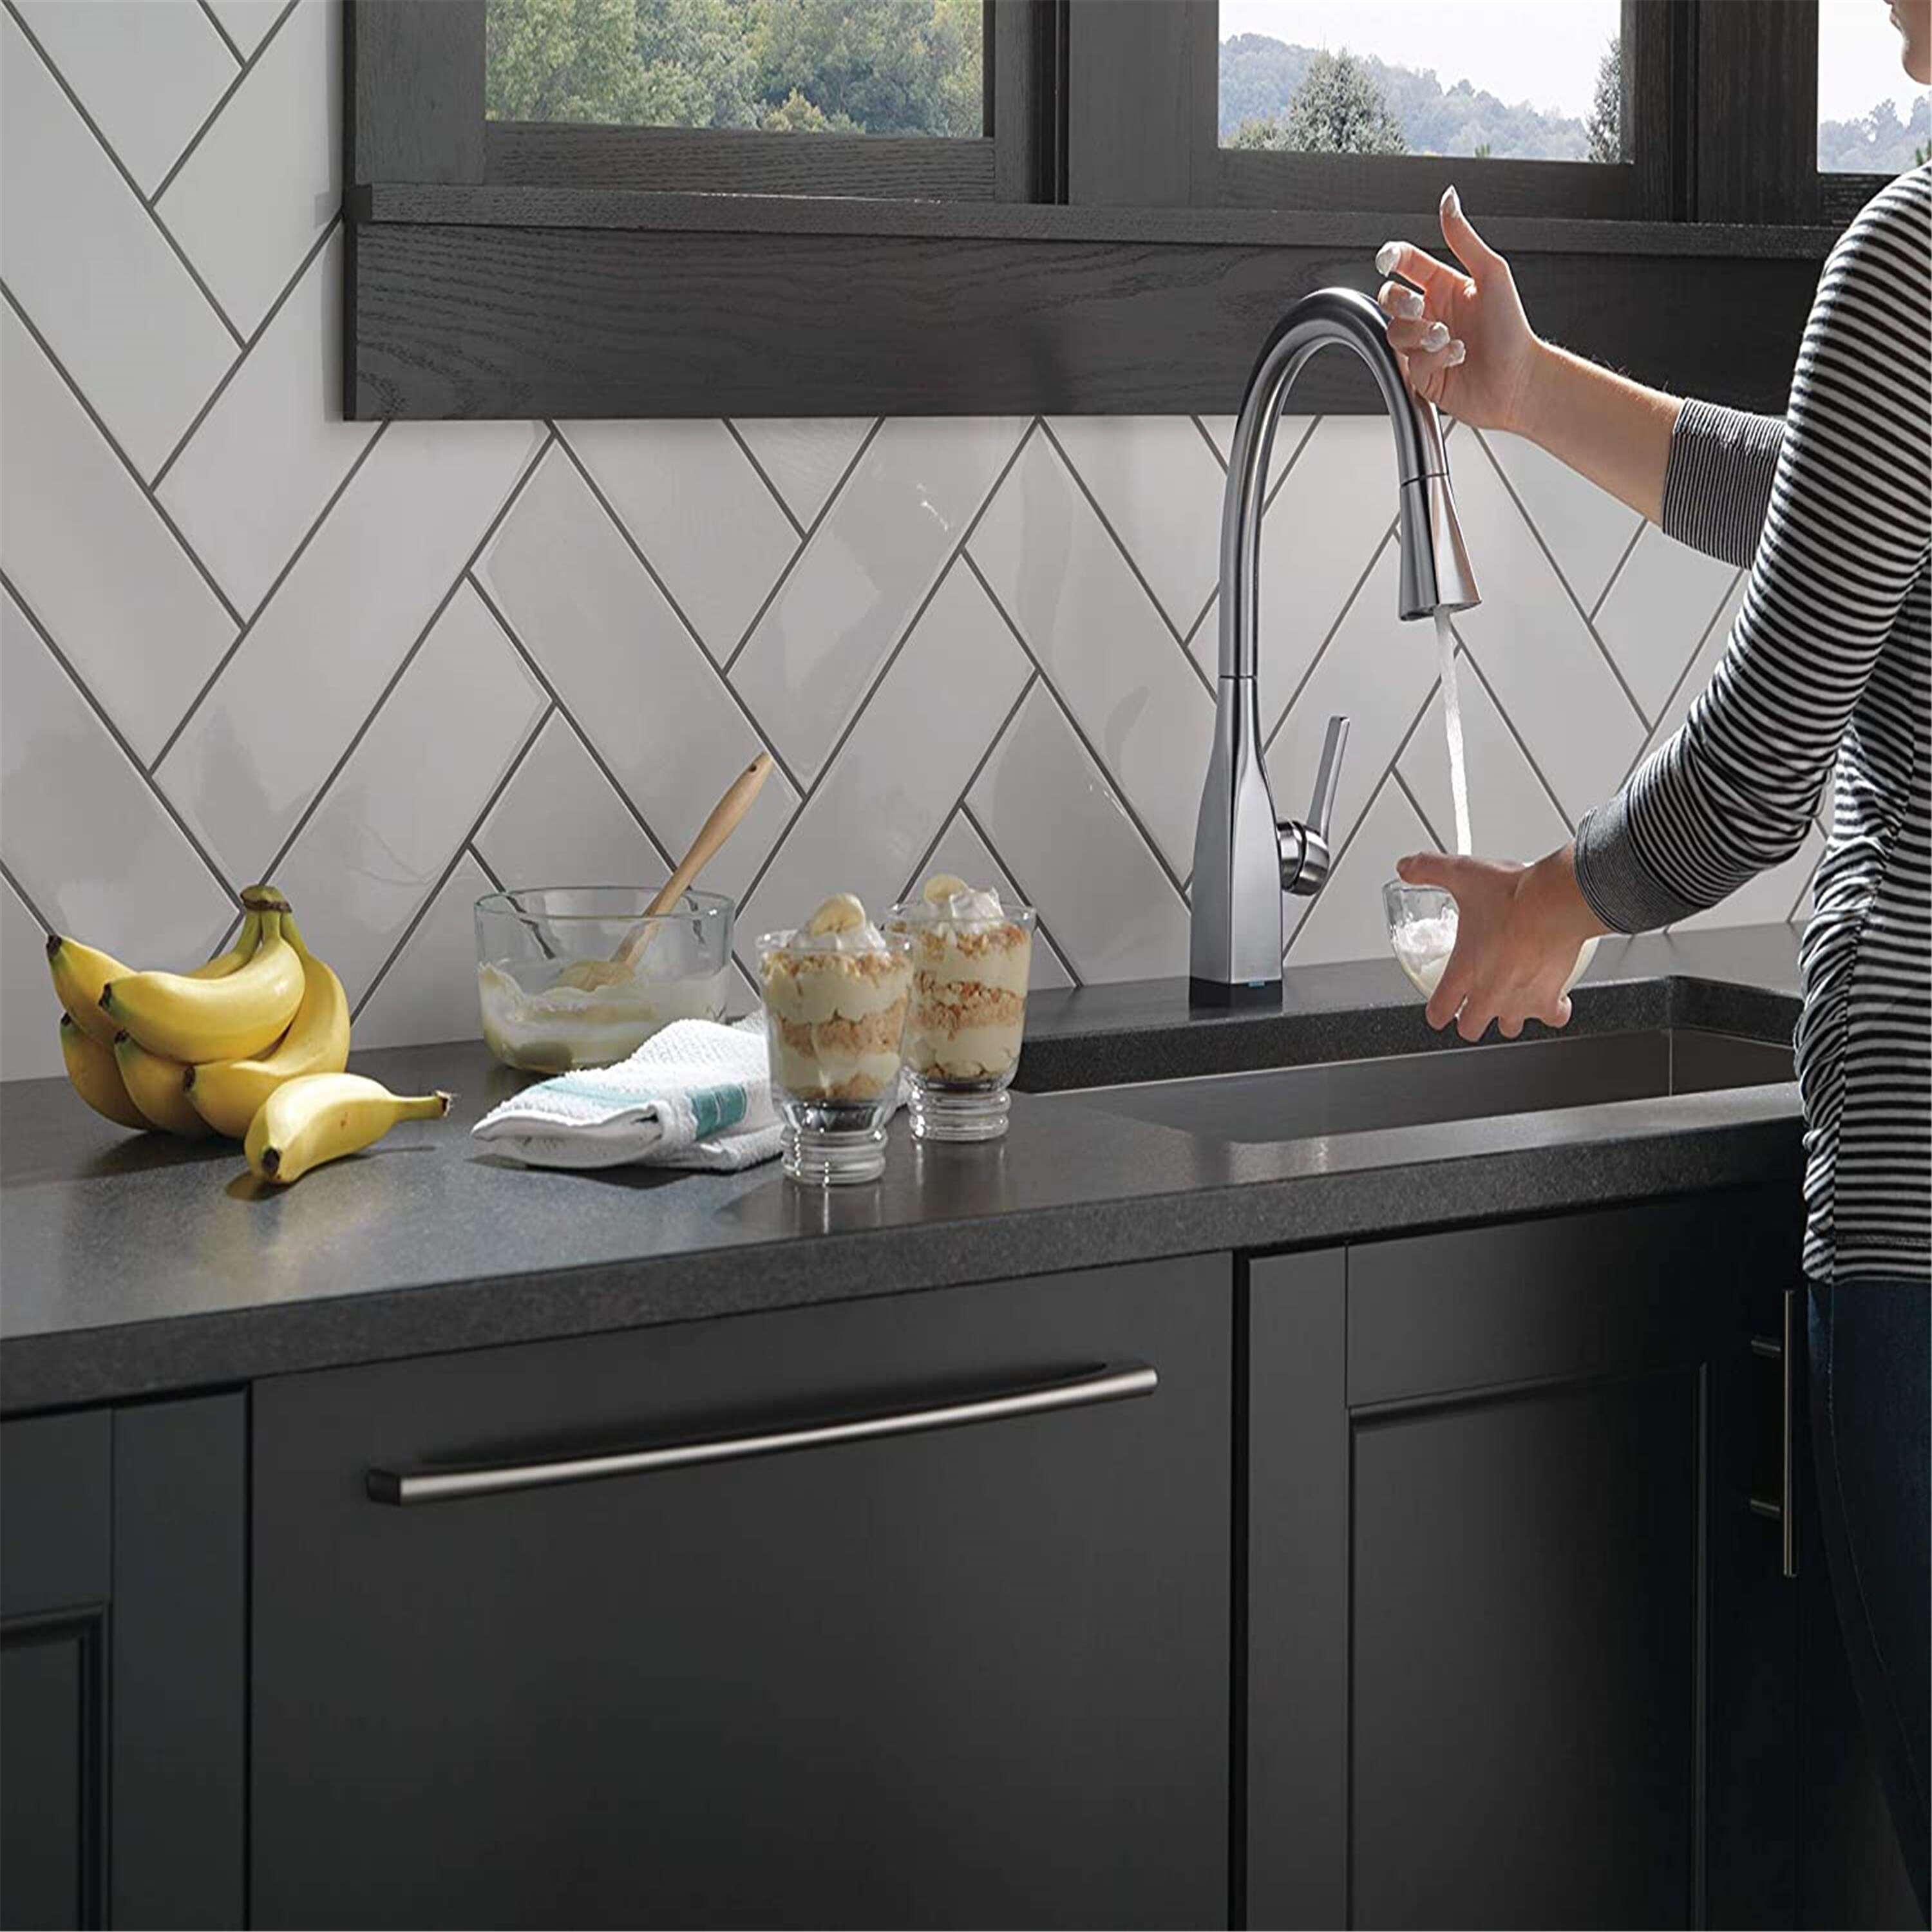 single handle touch kitchen sink faucet with pull down sprayer alexa and google assistant voice activated smart home